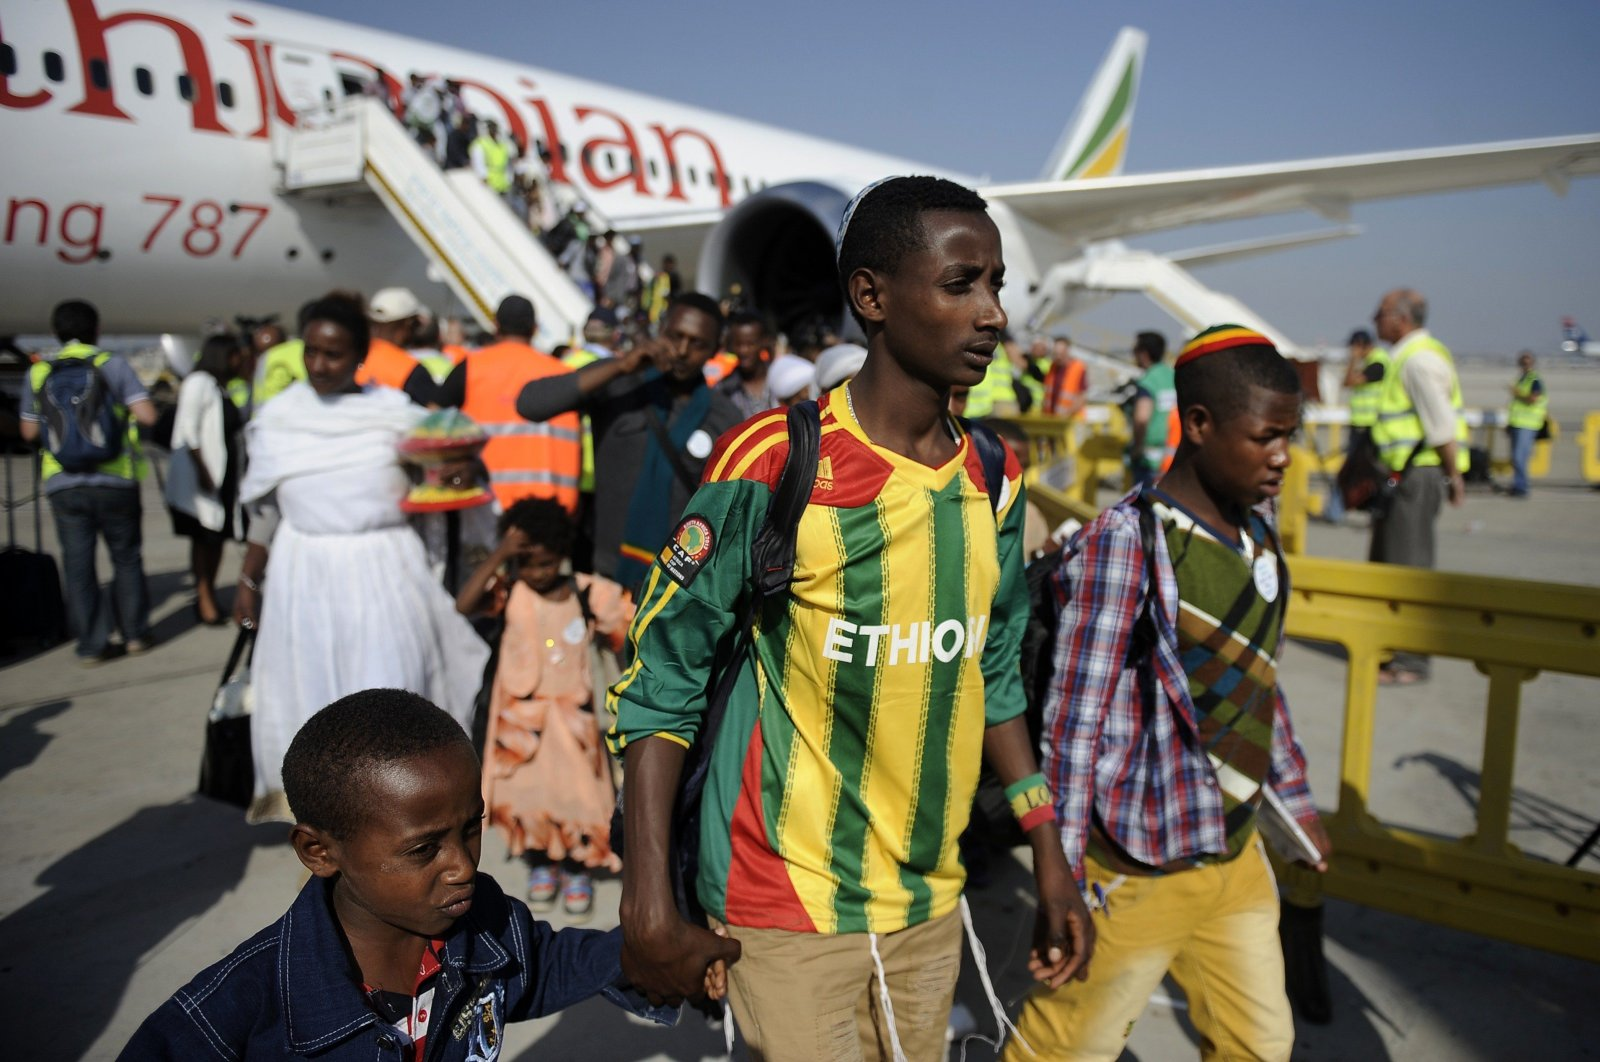 Newly-arrived Jewish immigrants coming from Ethiopia step off the plane upon their arrival at Ben Gurion International Airport on Aug. 28, 2013 near the Israeli costal city of Tel Aviv. (AFP Photo)